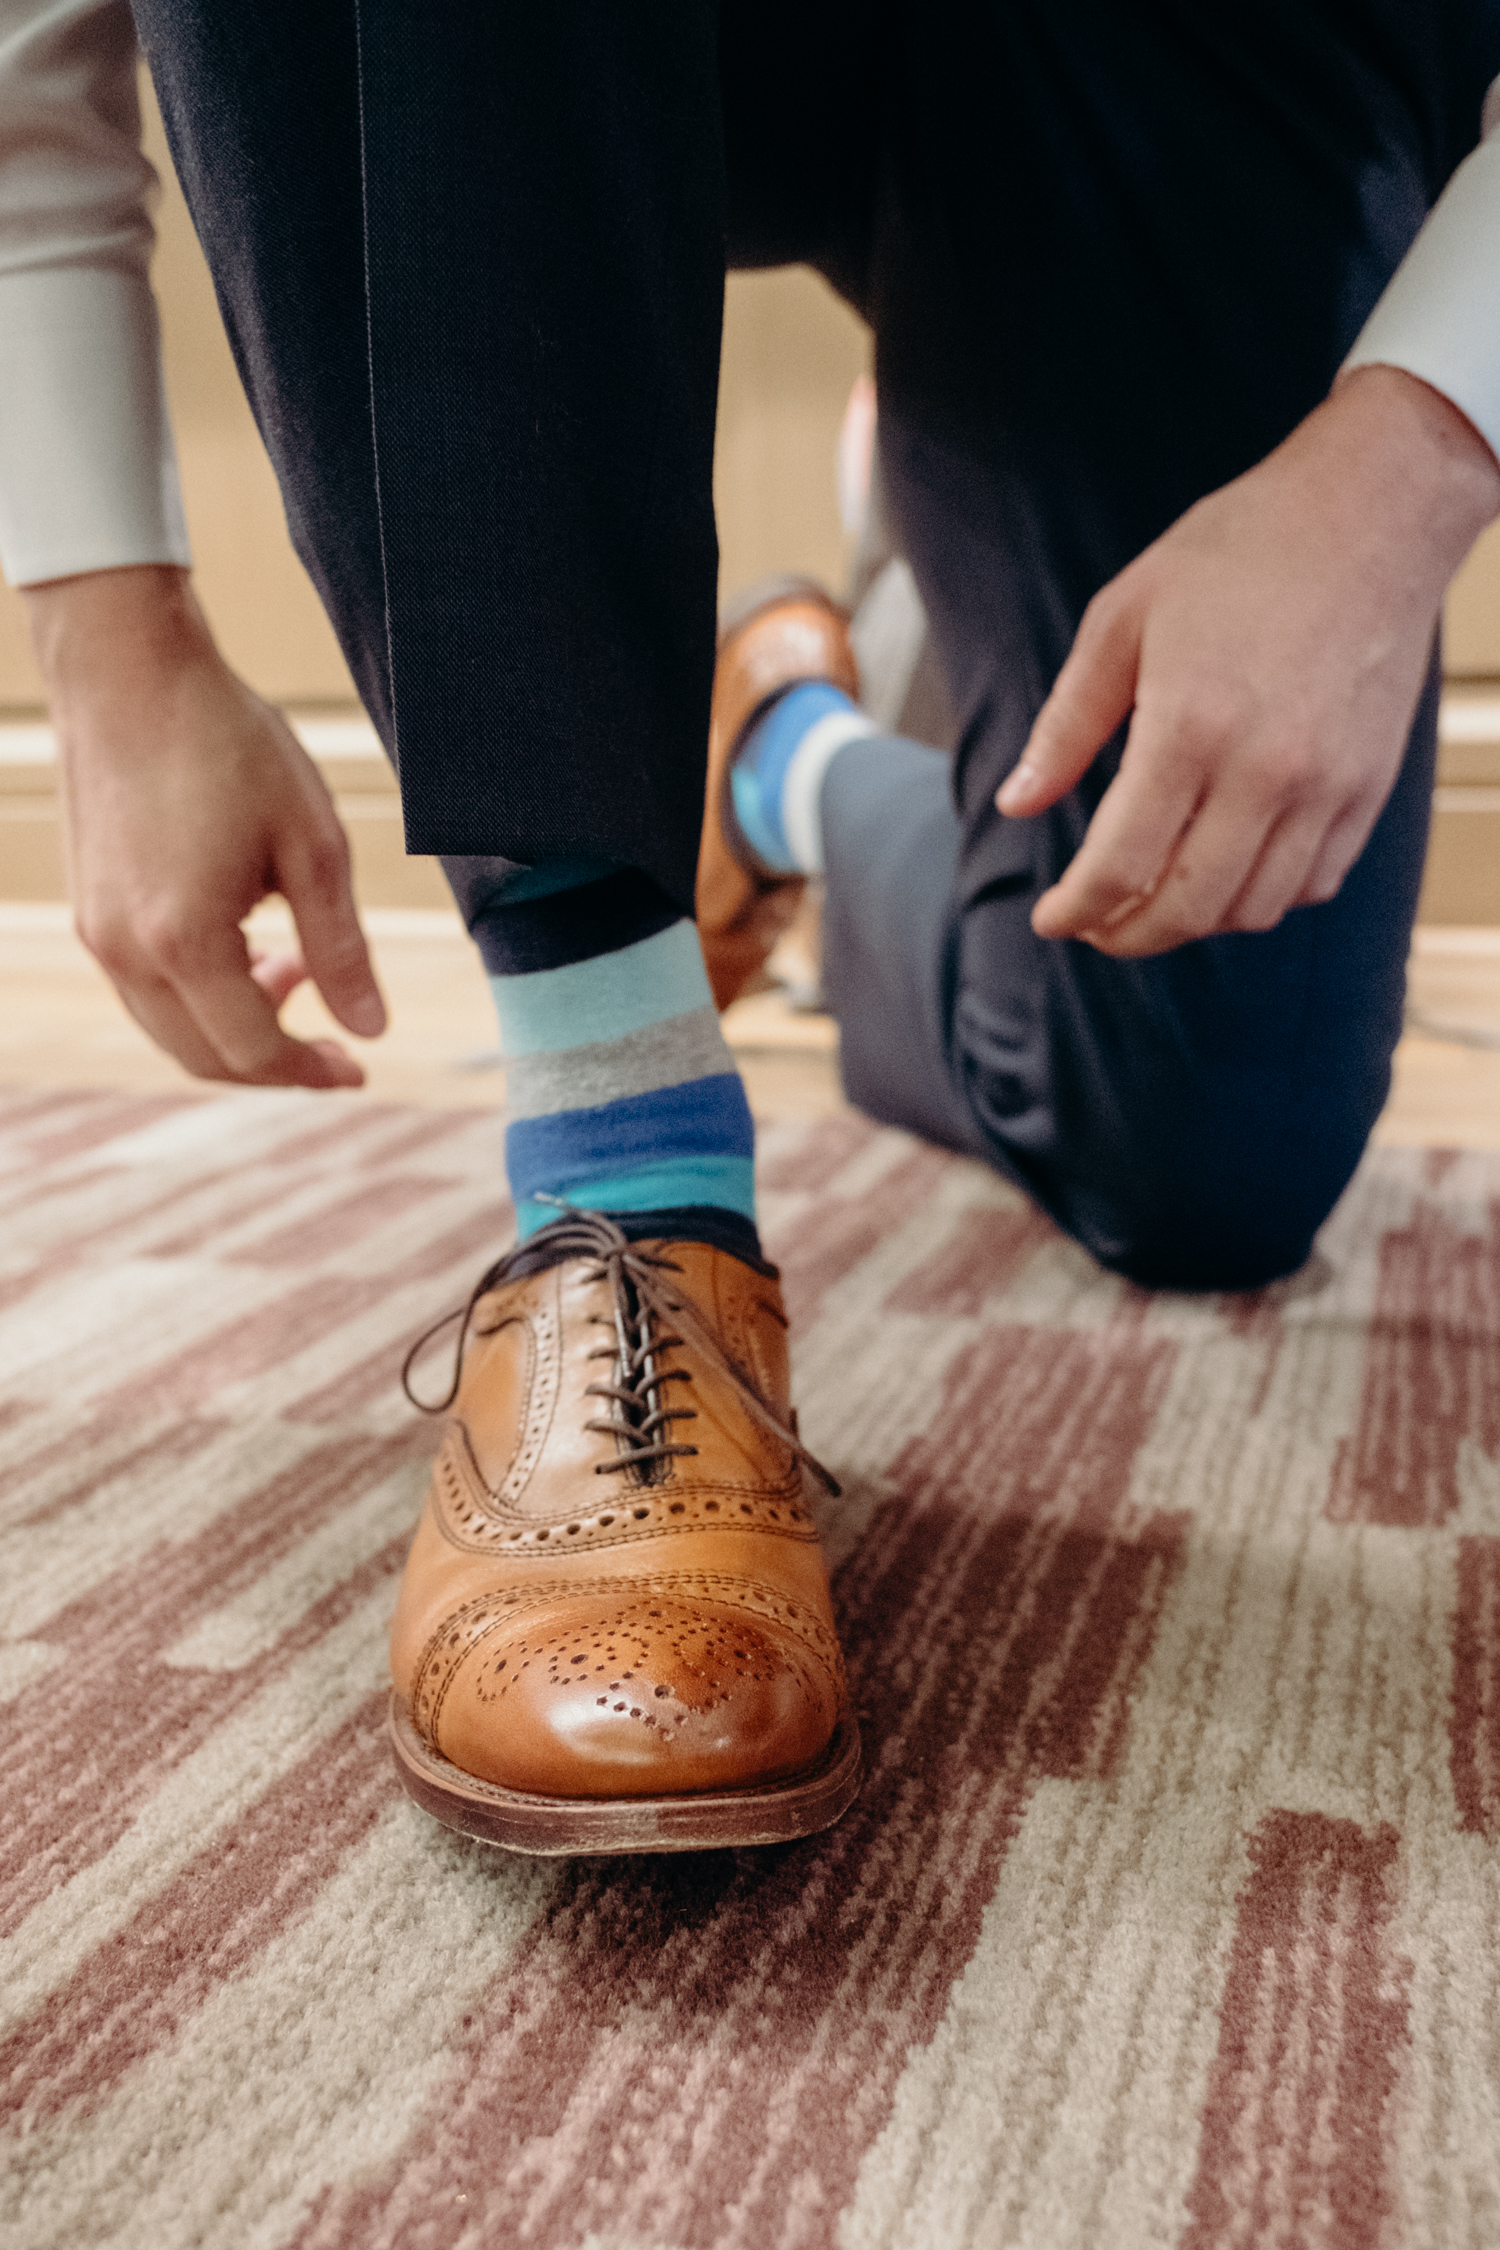 A groom with brown shoes and blue socks leans down to finish tying his shoes before his wedding at Lansdowne Resort.